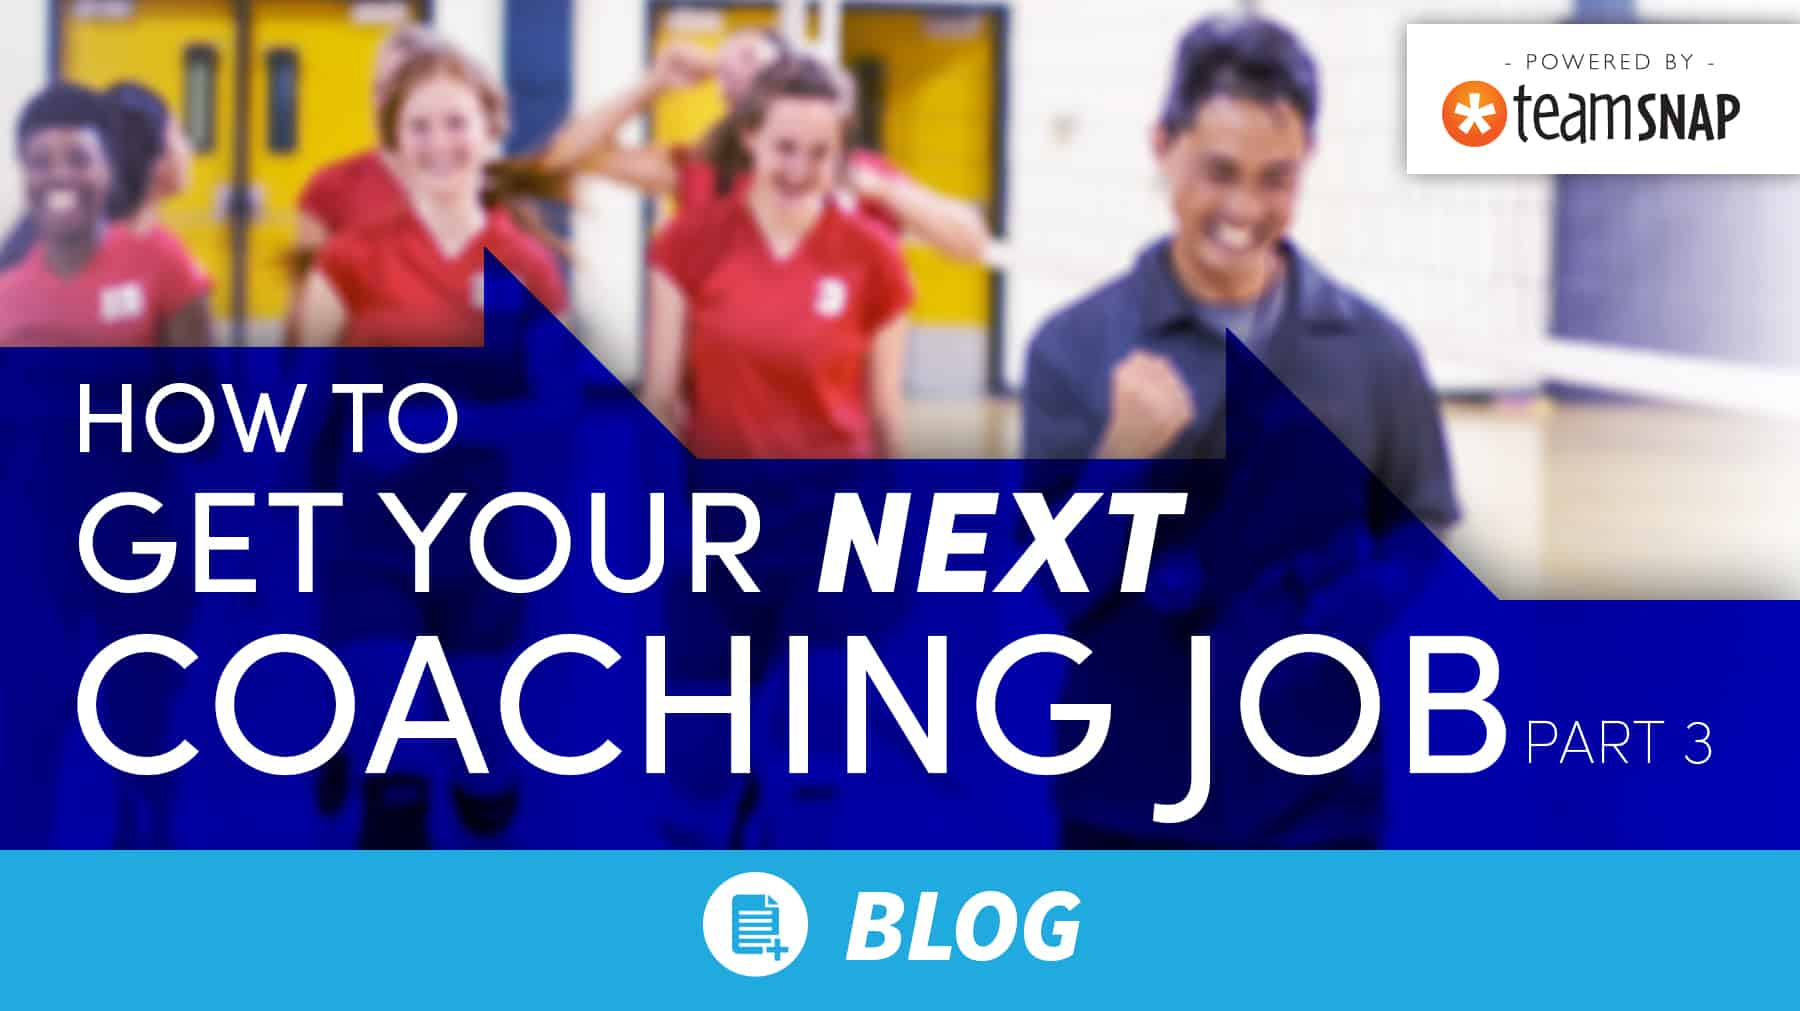 How to get your NEXT coaching job: Part 3